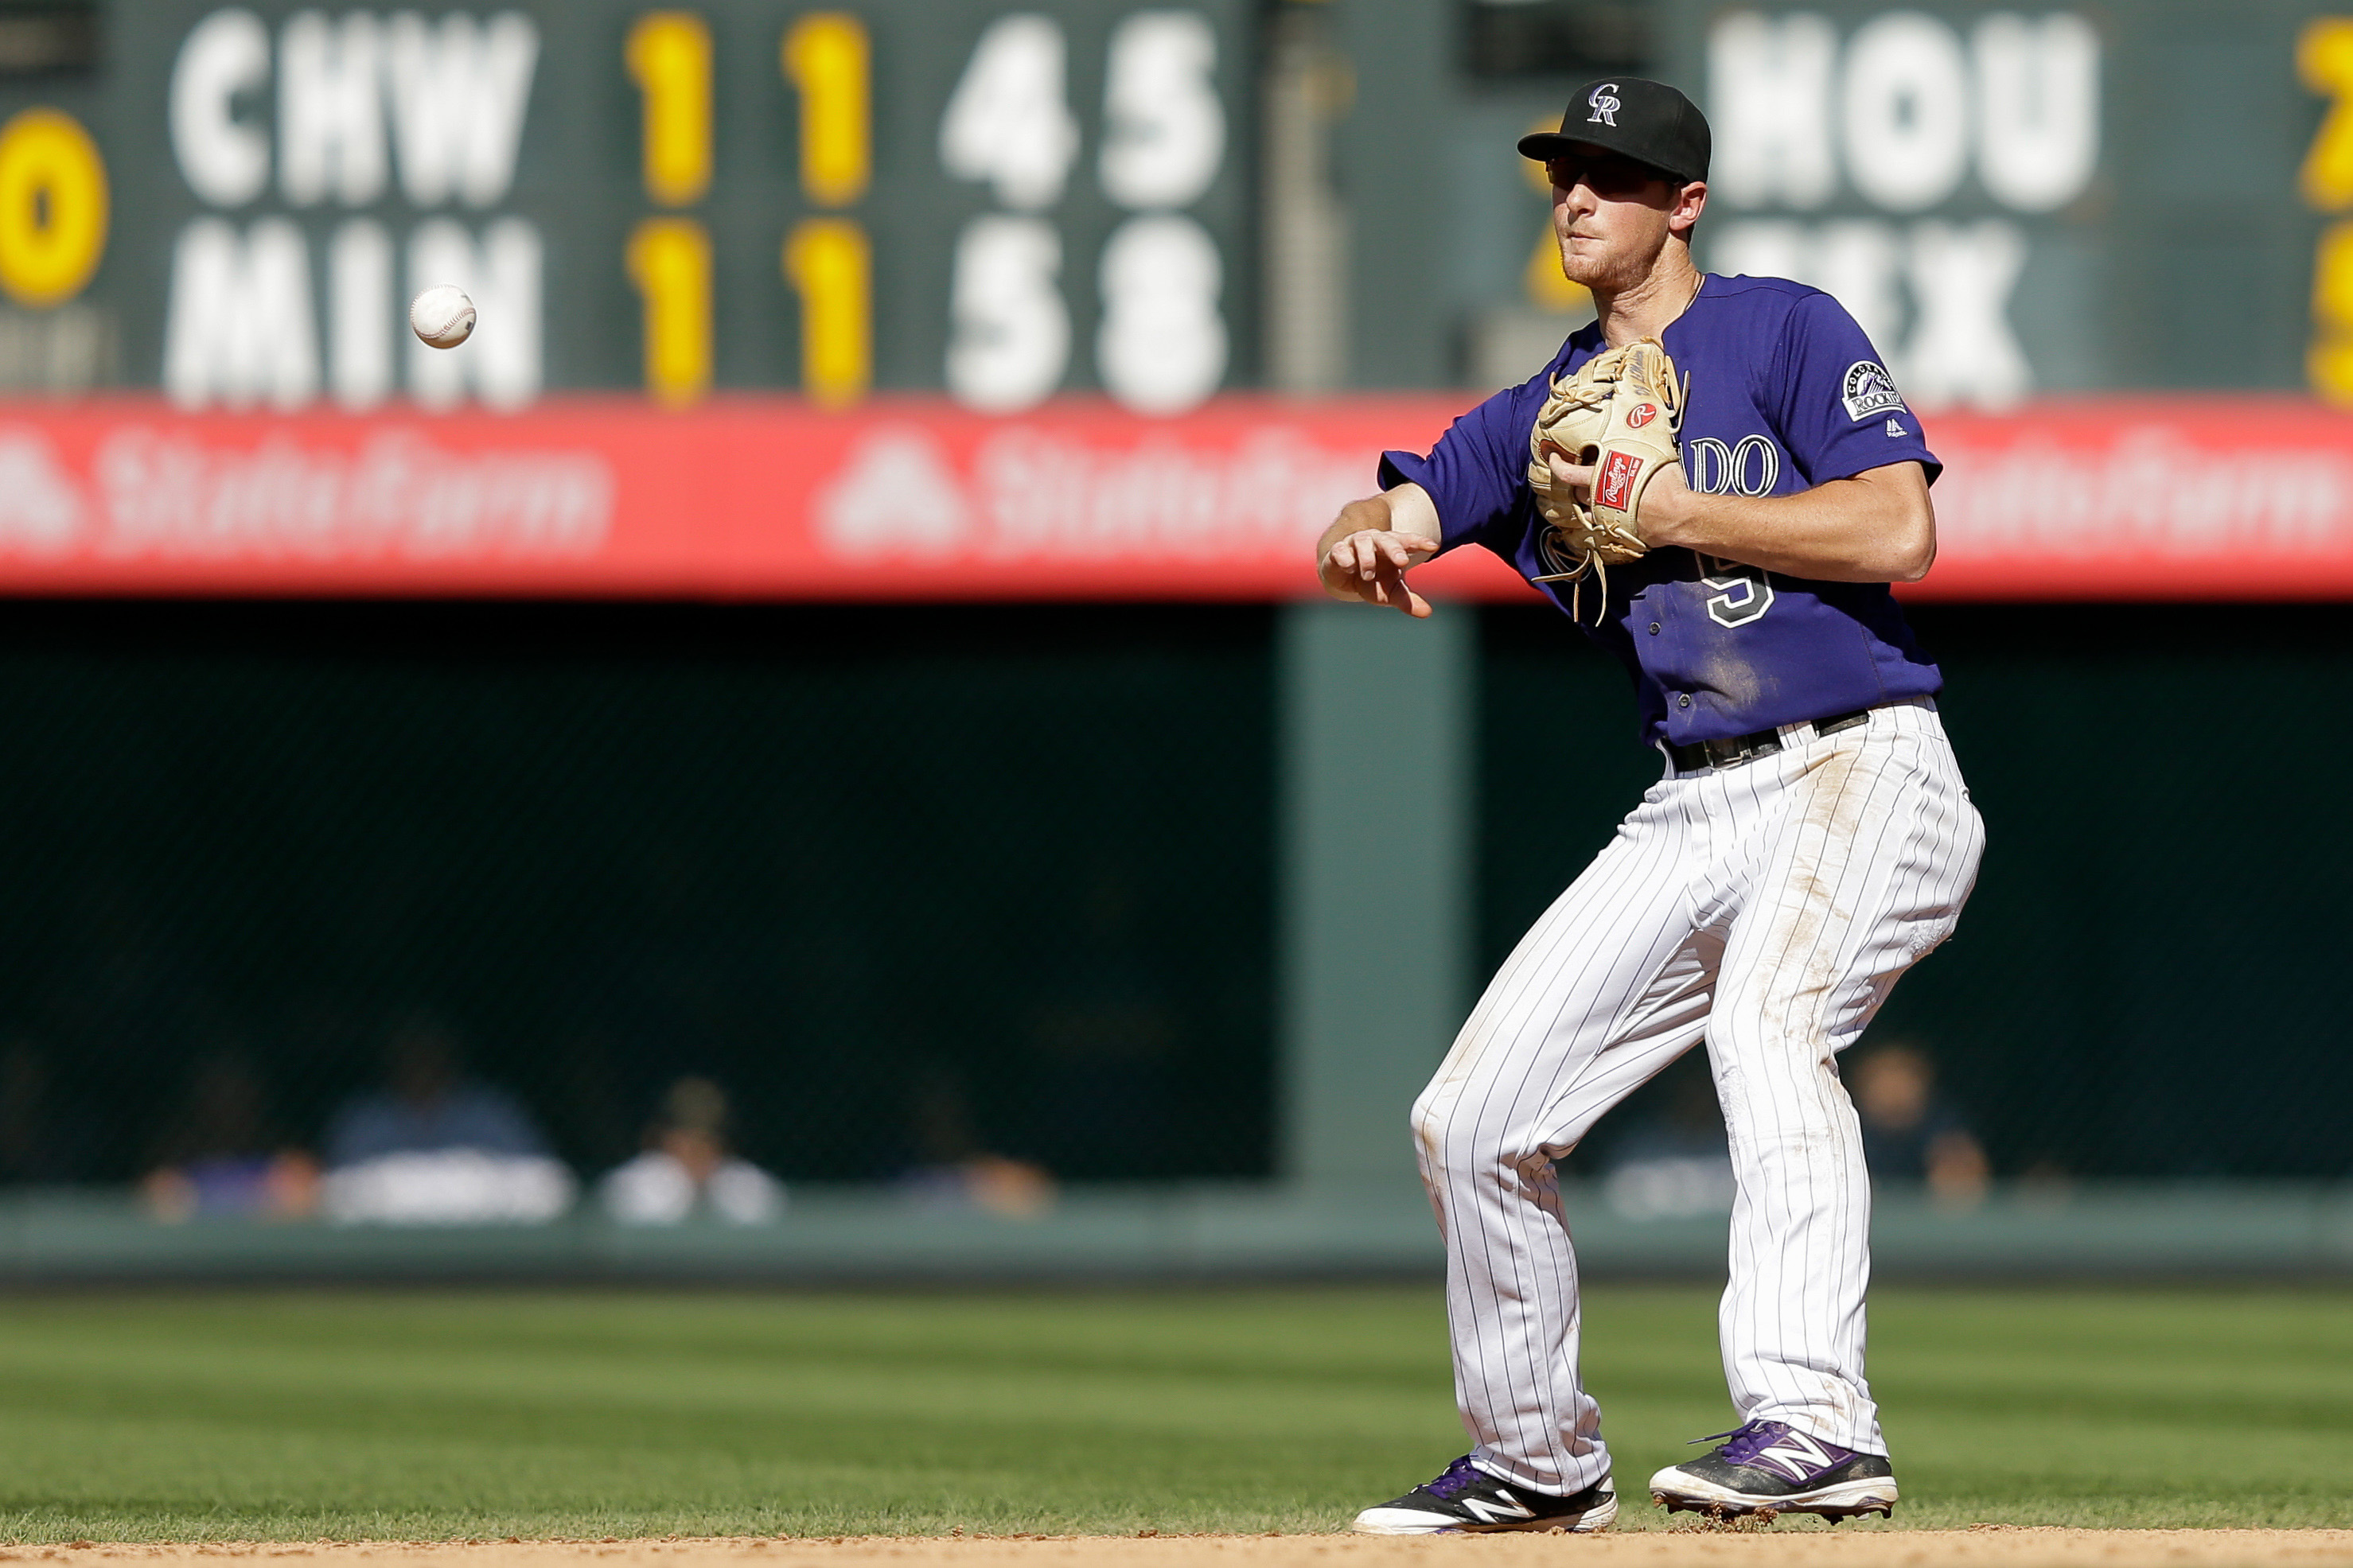 9527518-mlb-arizona-diamondbacks-at-colorado-rockies